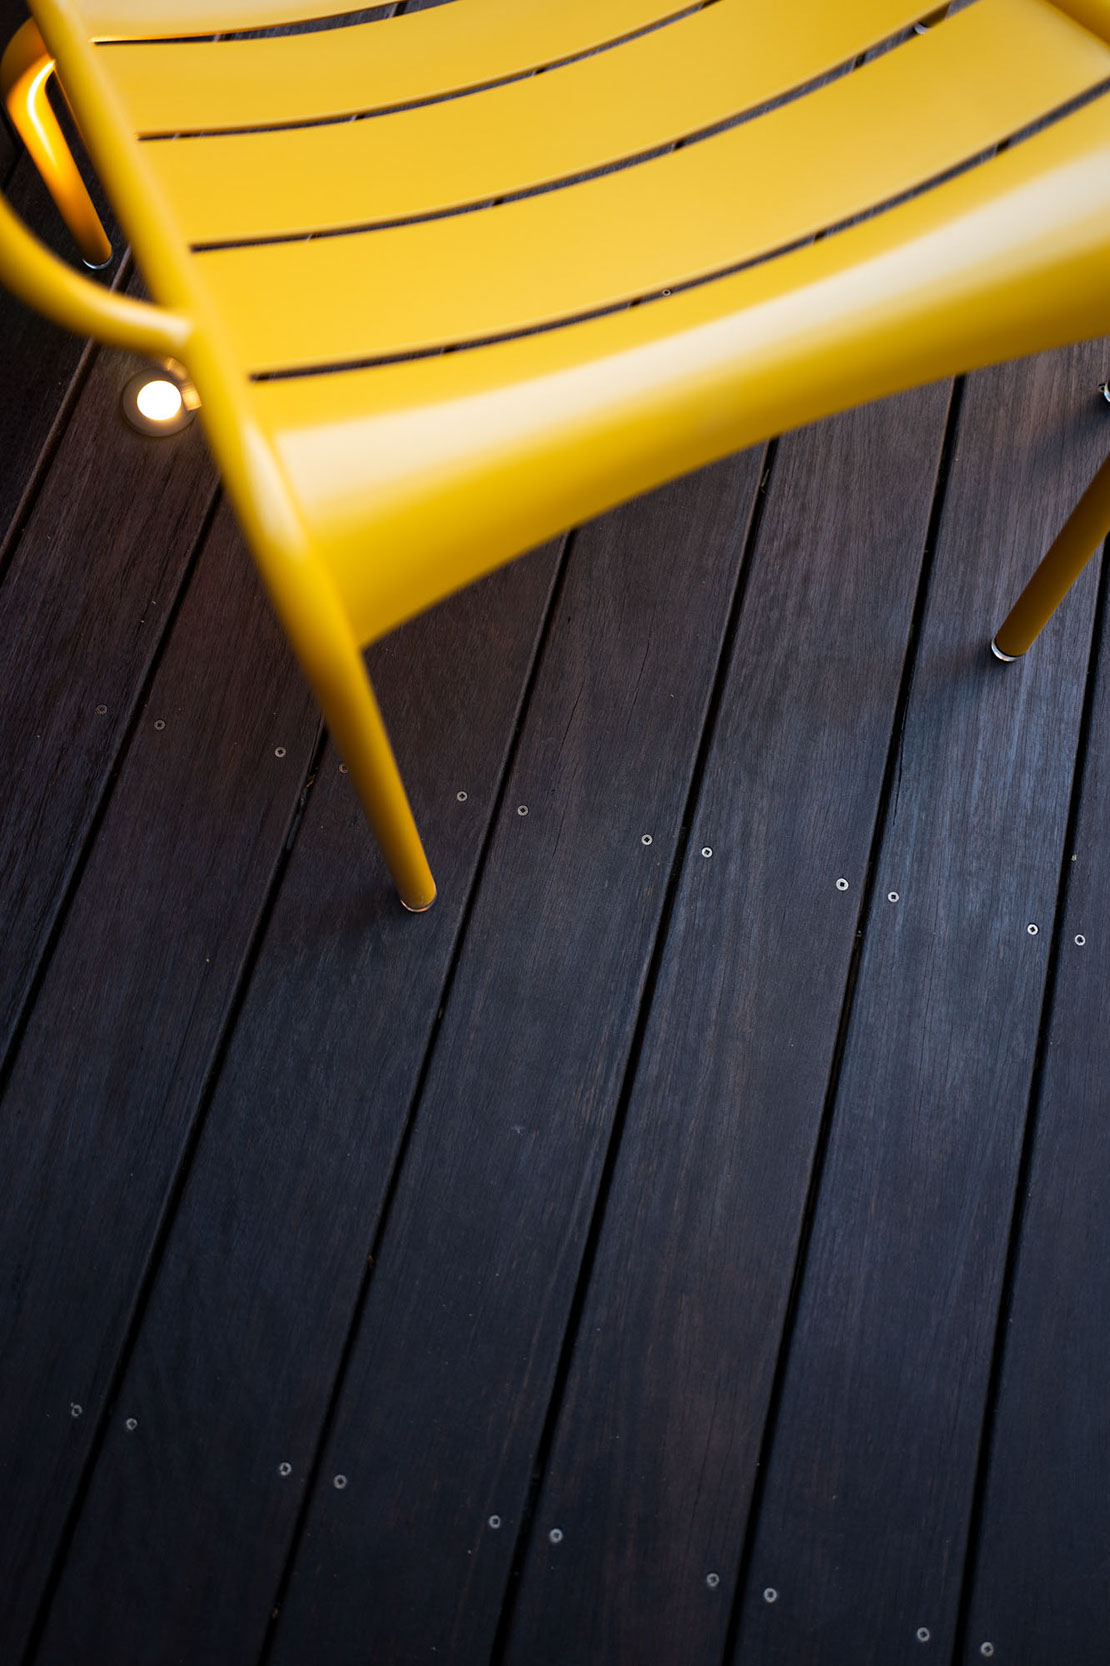 Timber & Deck Stain - Black Japan